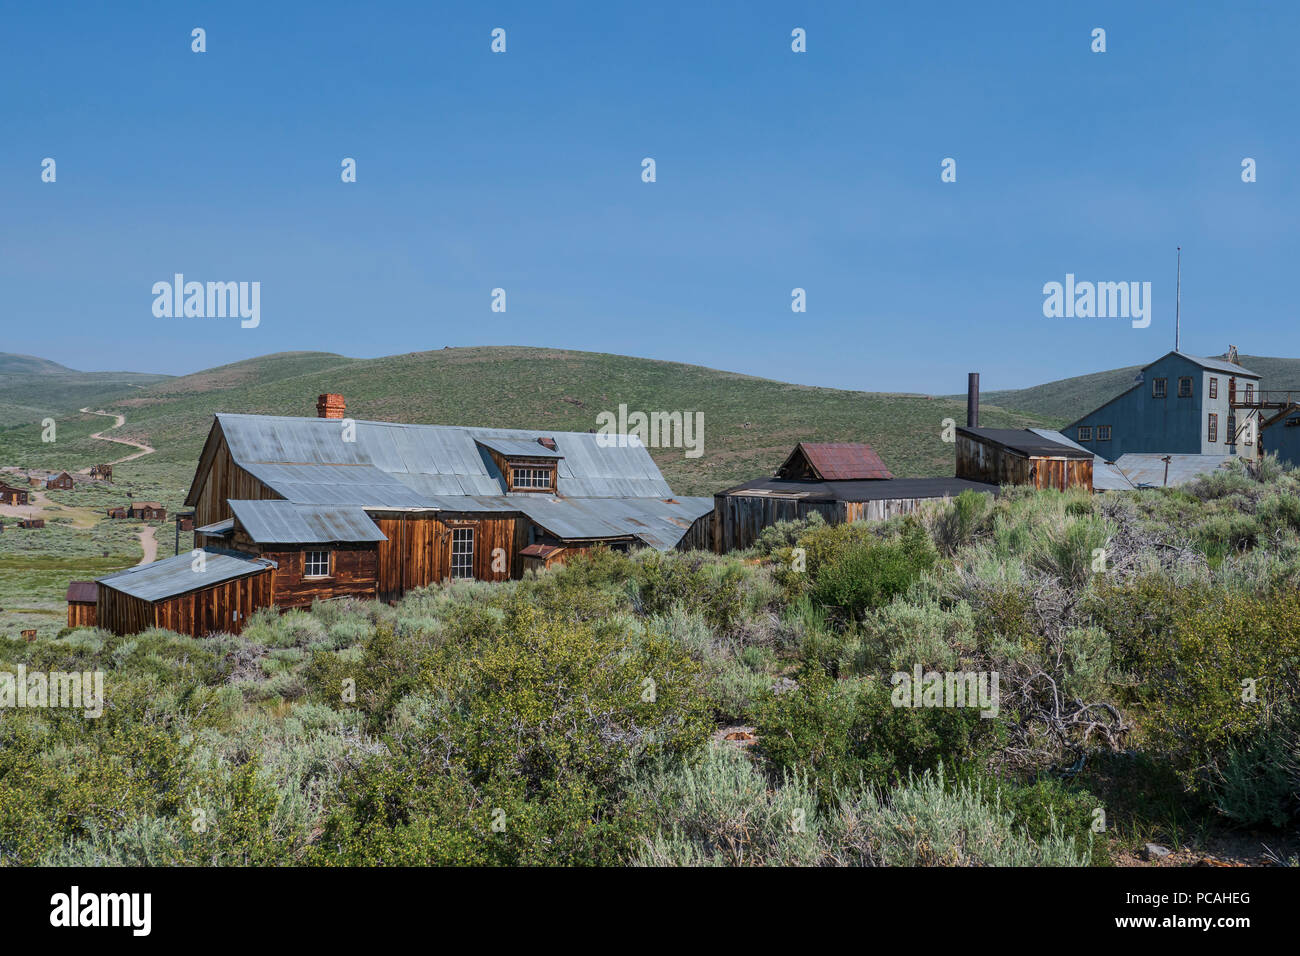 Wooden and tin mine buildings, Bodie ghost town, Bodie State Historic Park, California. Stock Photo